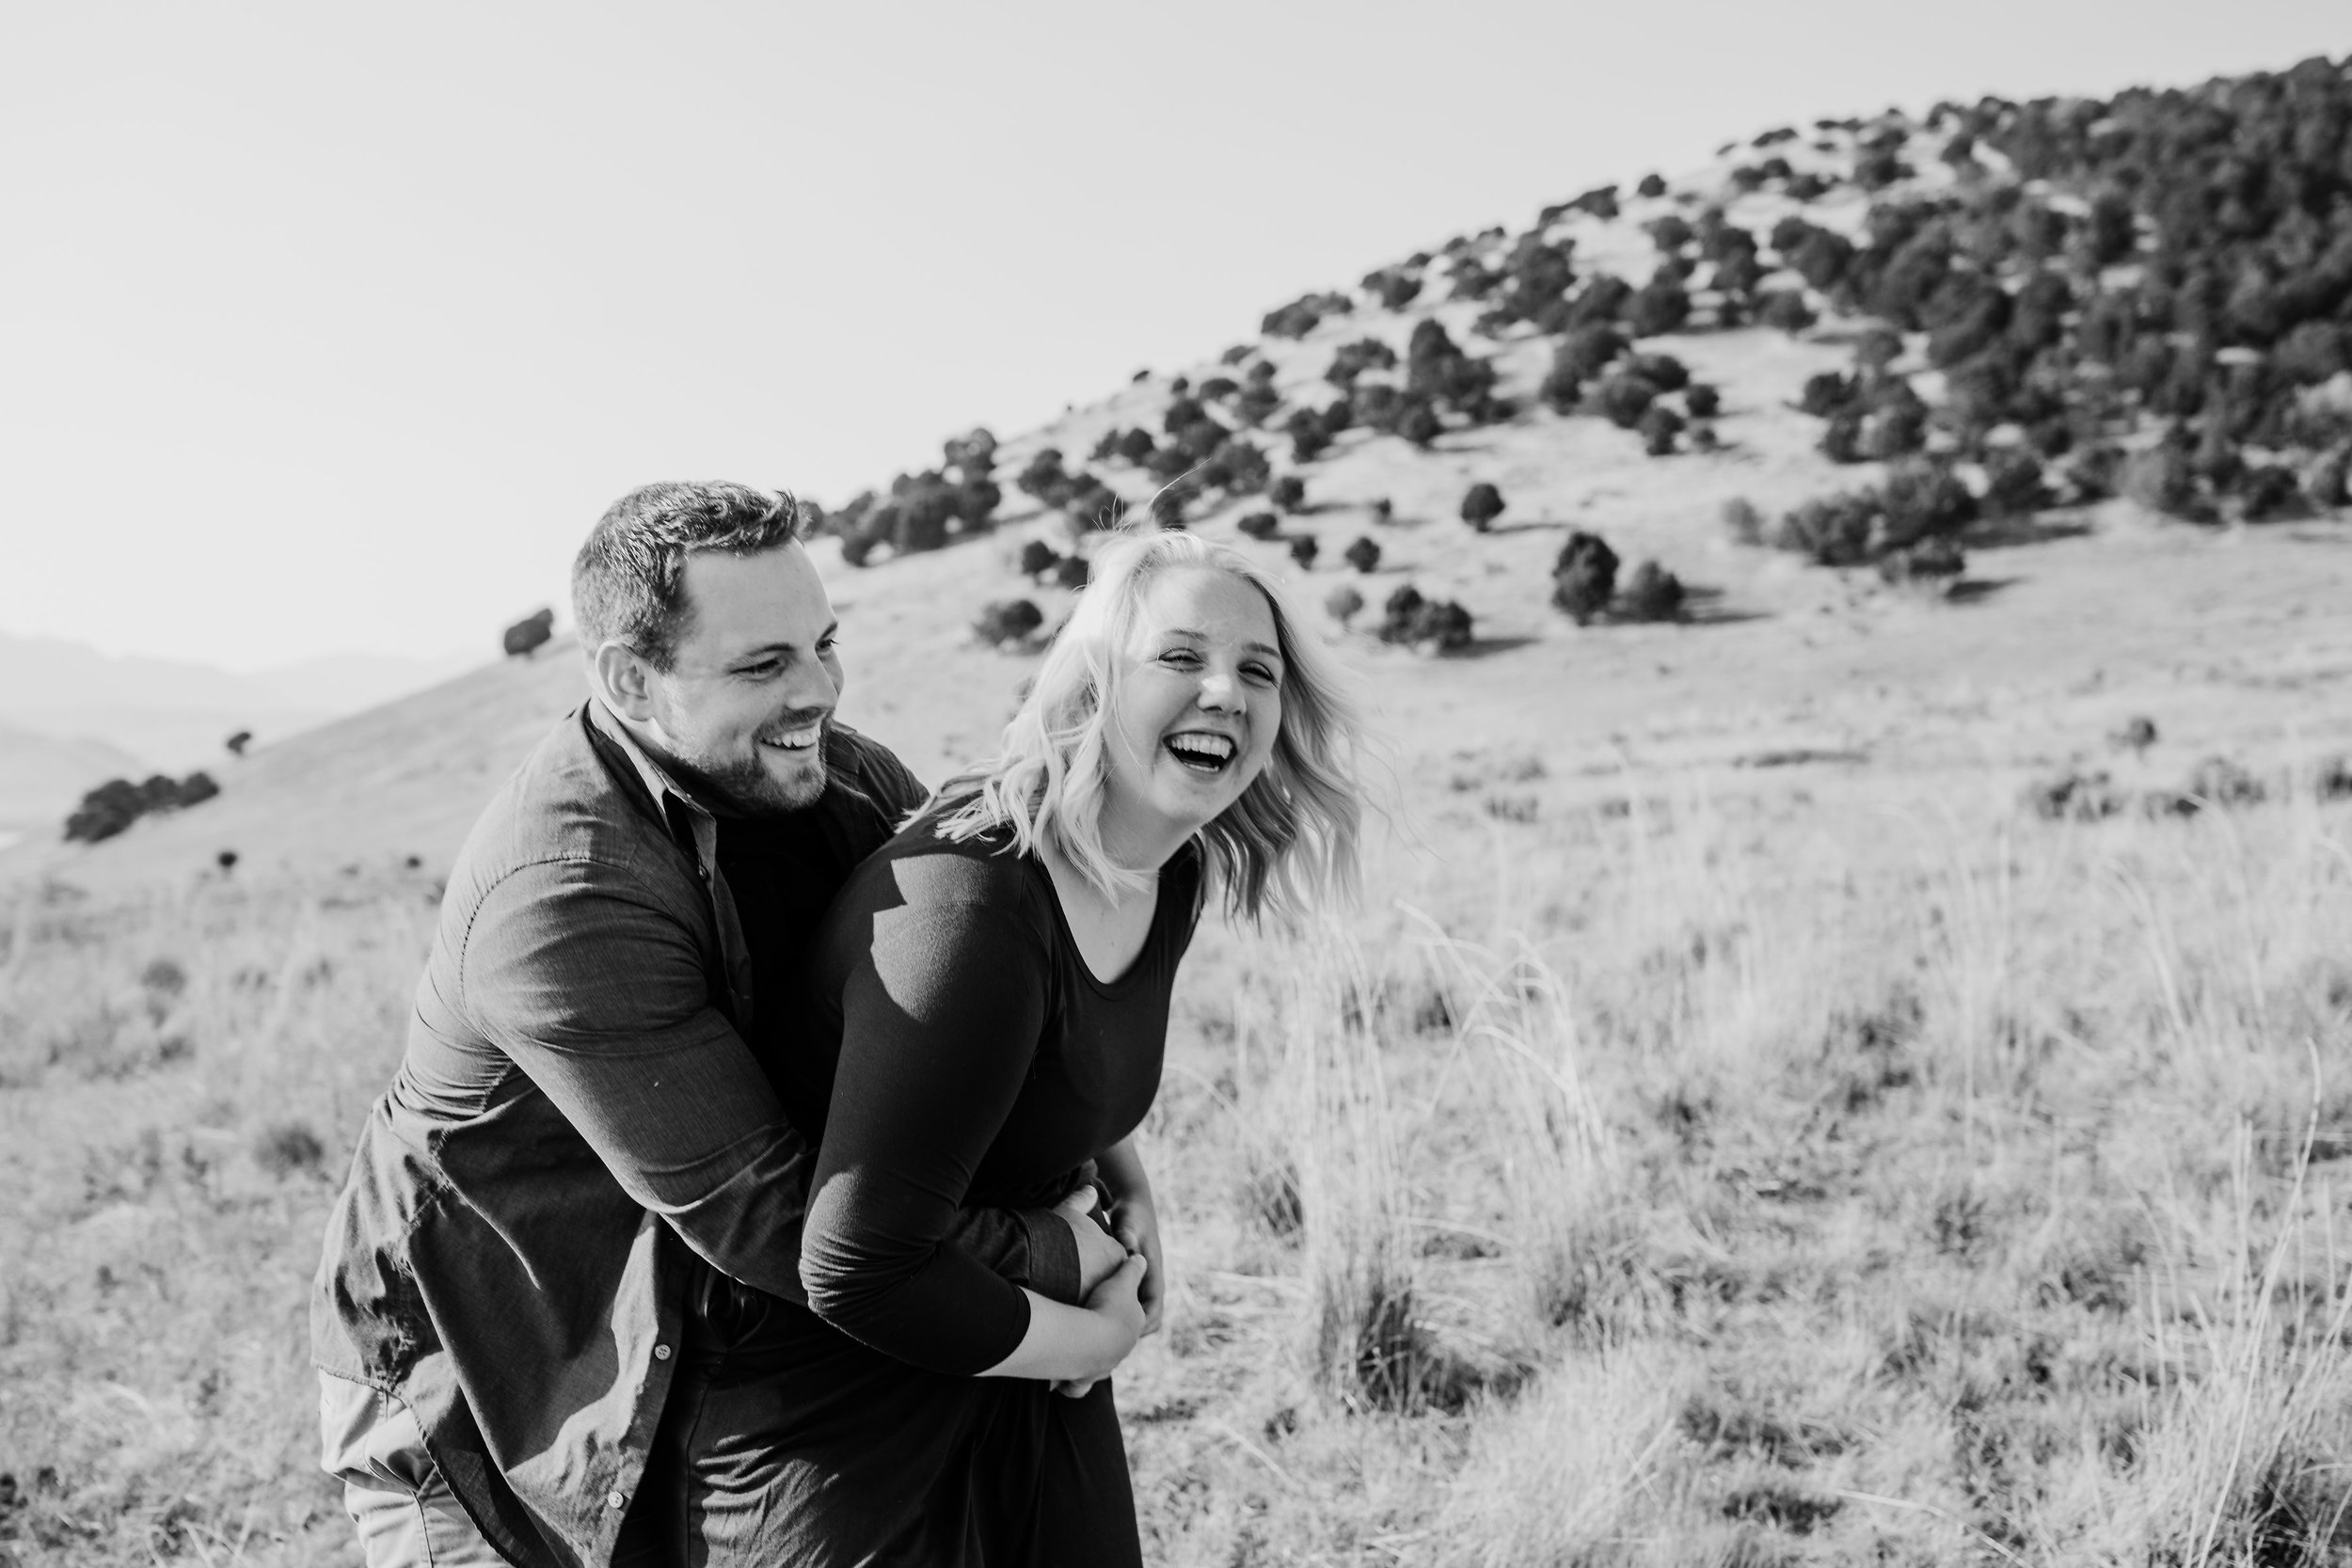 engagement photographer in brigham city utah hugging mountains laughing playful